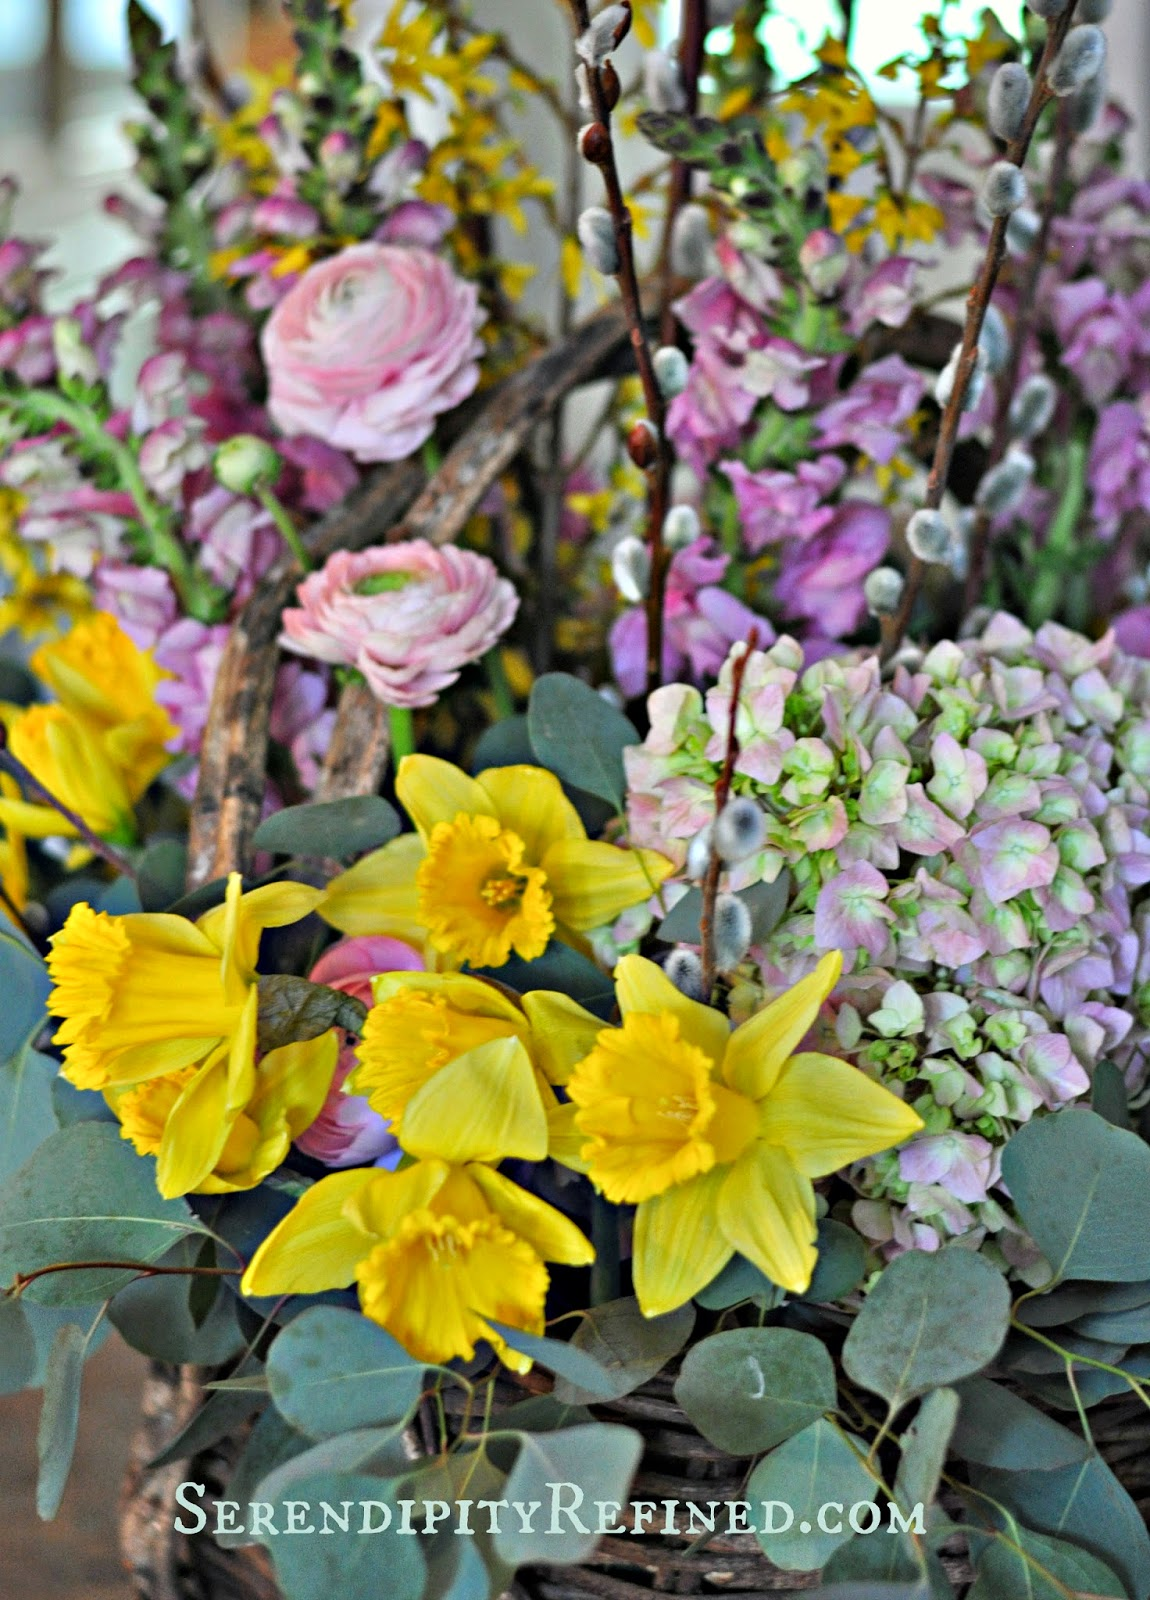 My Favorites Are The Ranunculus Flowers Make Me Swoon In All Honesty After Winter Weve Had This Year Any Hint Of Spring Makes